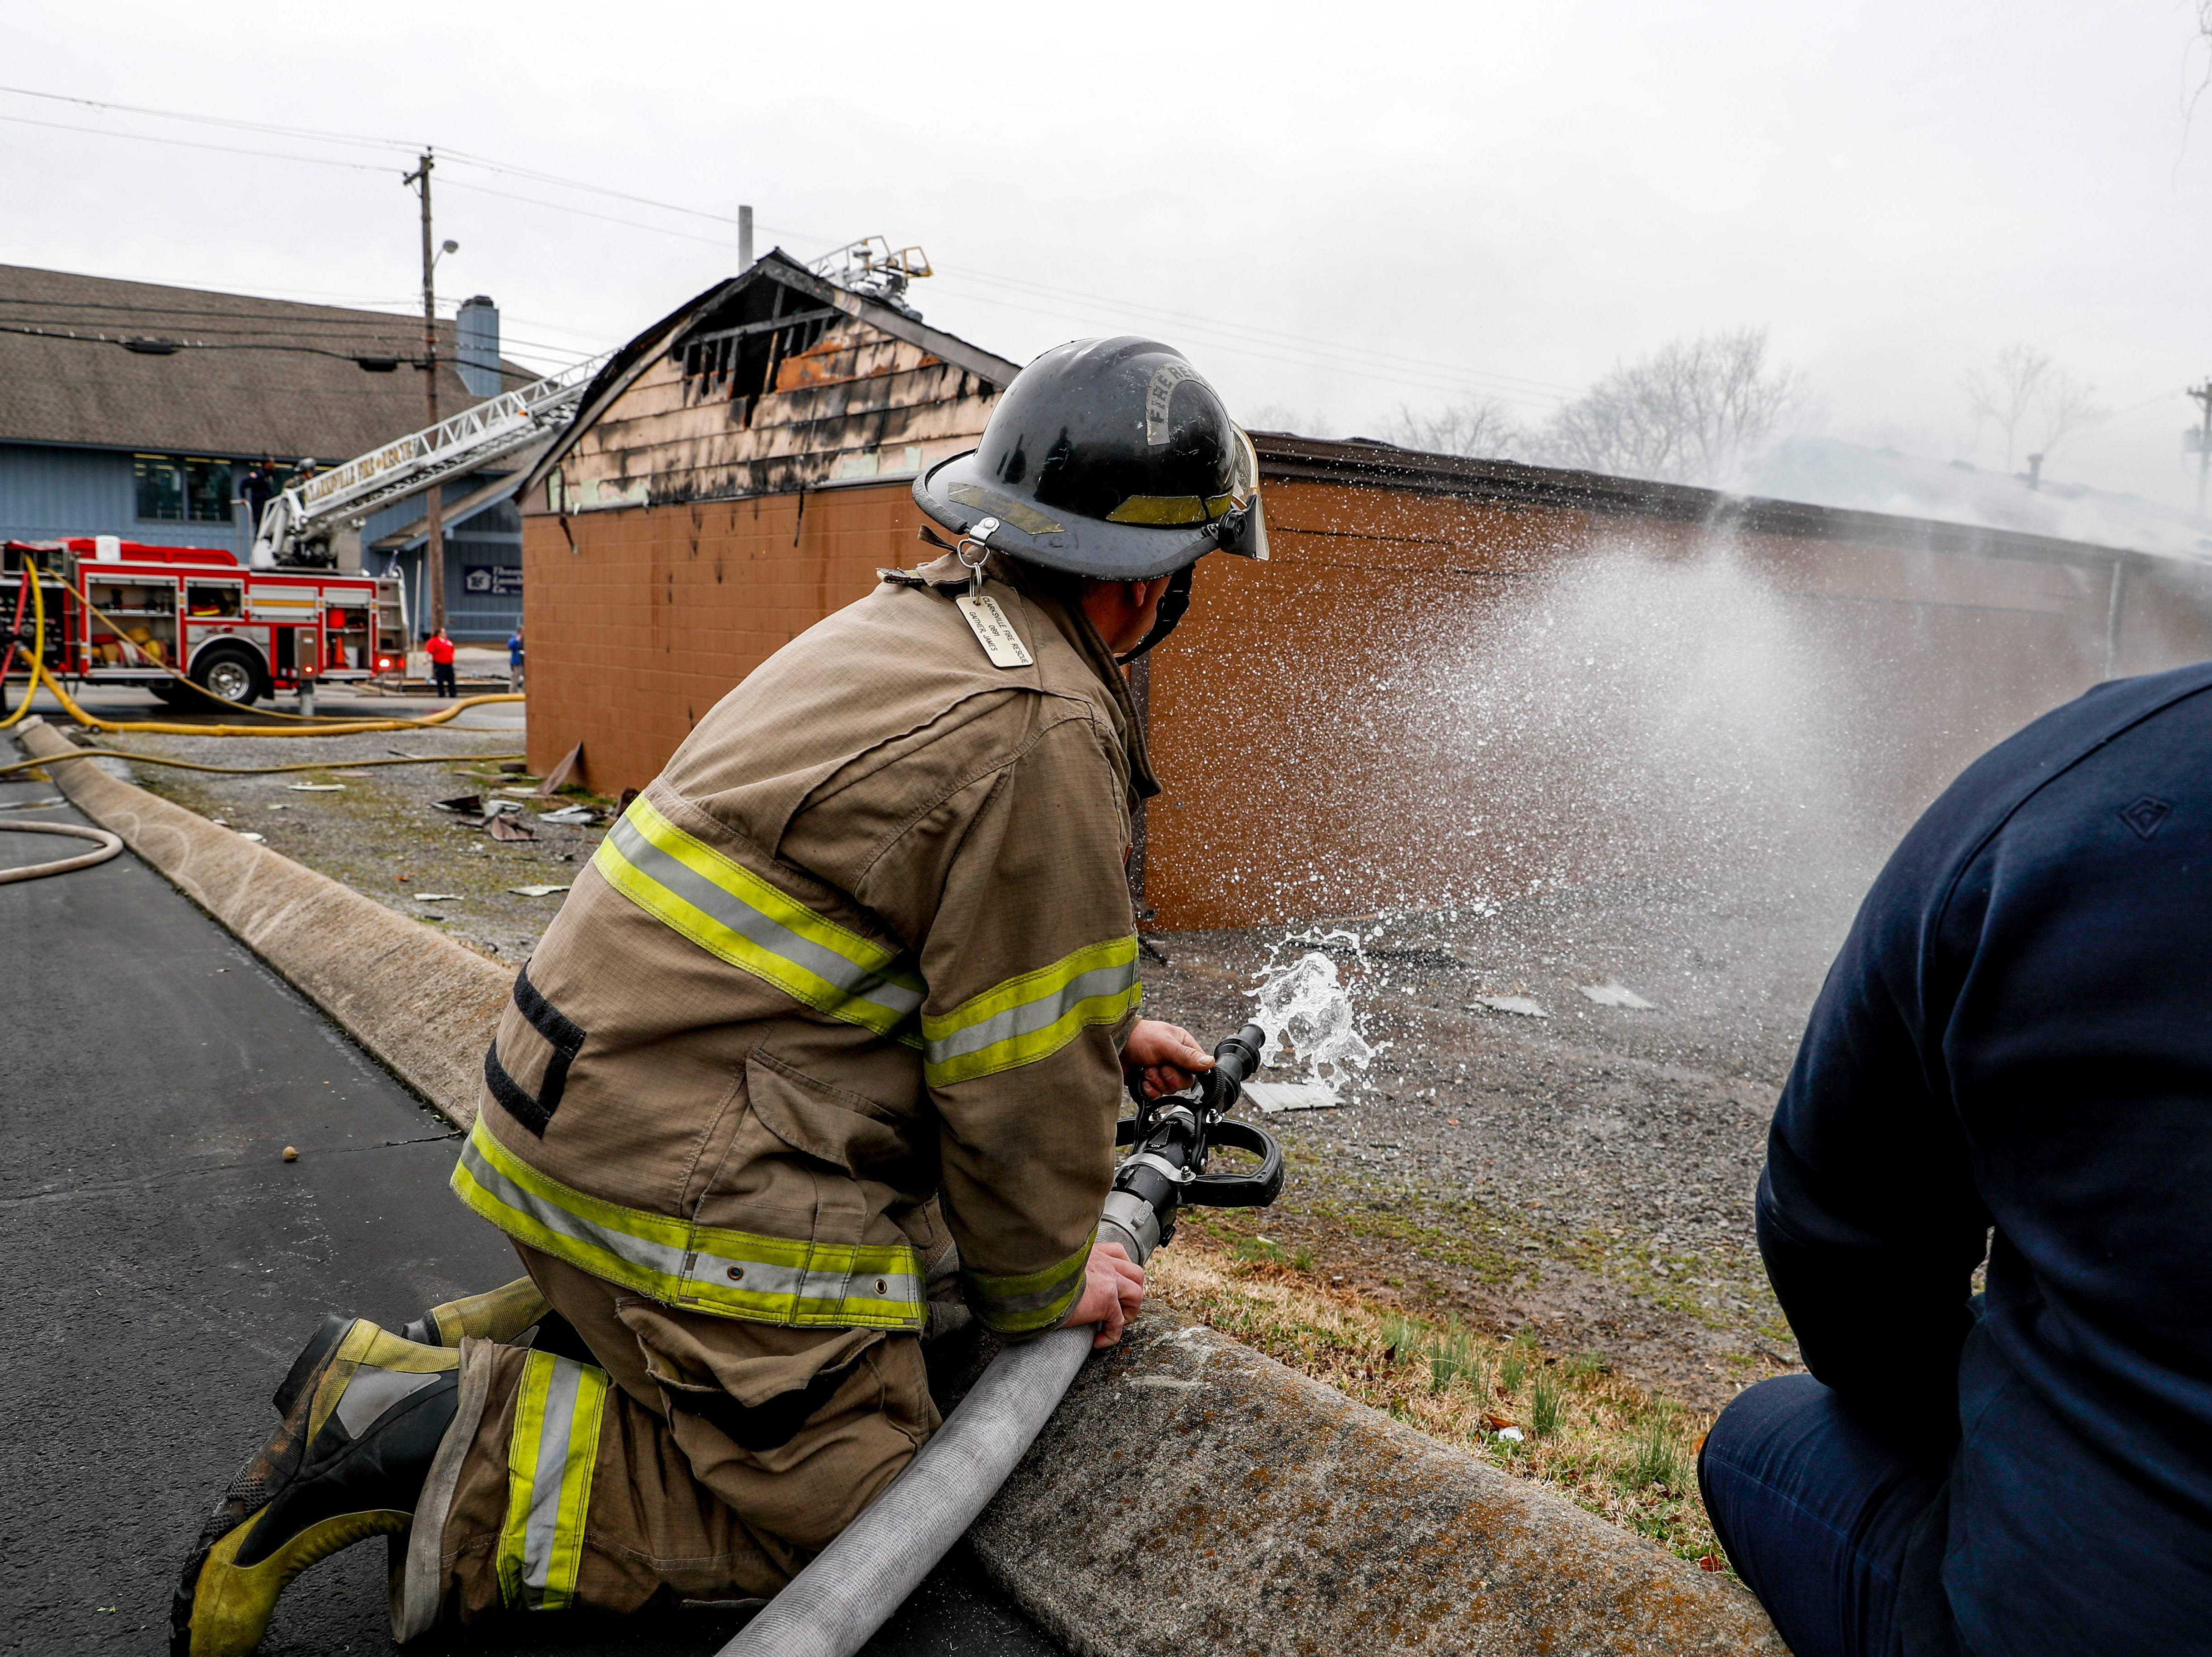 Clarksville Fire Rescue responders spray water to put out flames at Clarksville Guns & Archery in Clarksville, Tenn., on Tuesday, March 12, 2019.